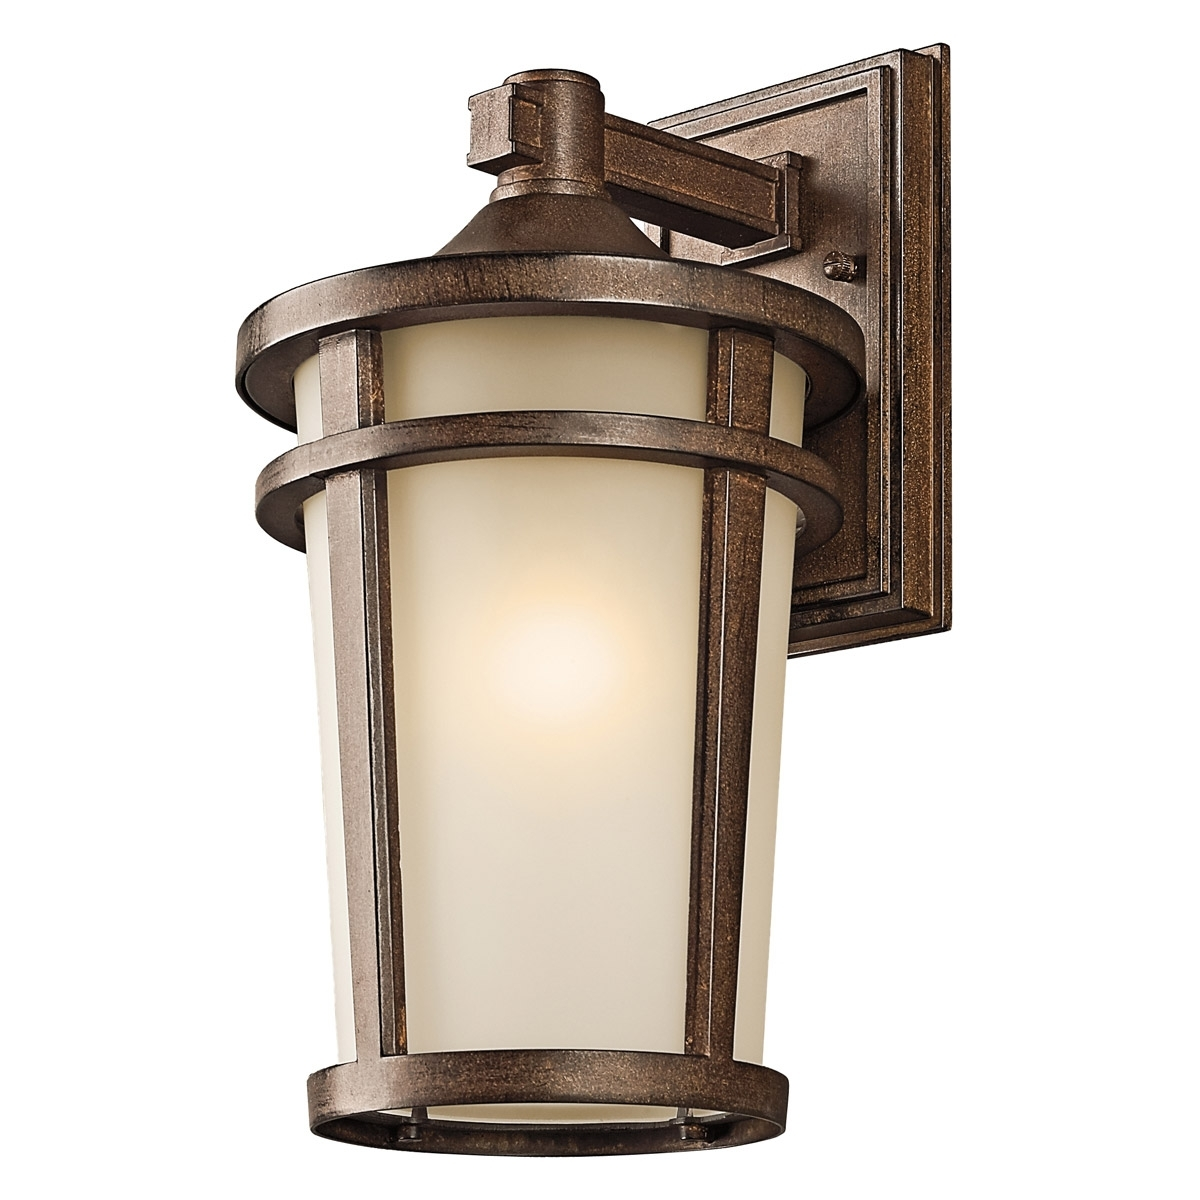 Outdoor Wall Mount Lighting Fixtures Within Most Recently Released 49072bst Atwood Outdoor Wall Mount Lantern (View 8 of 20)